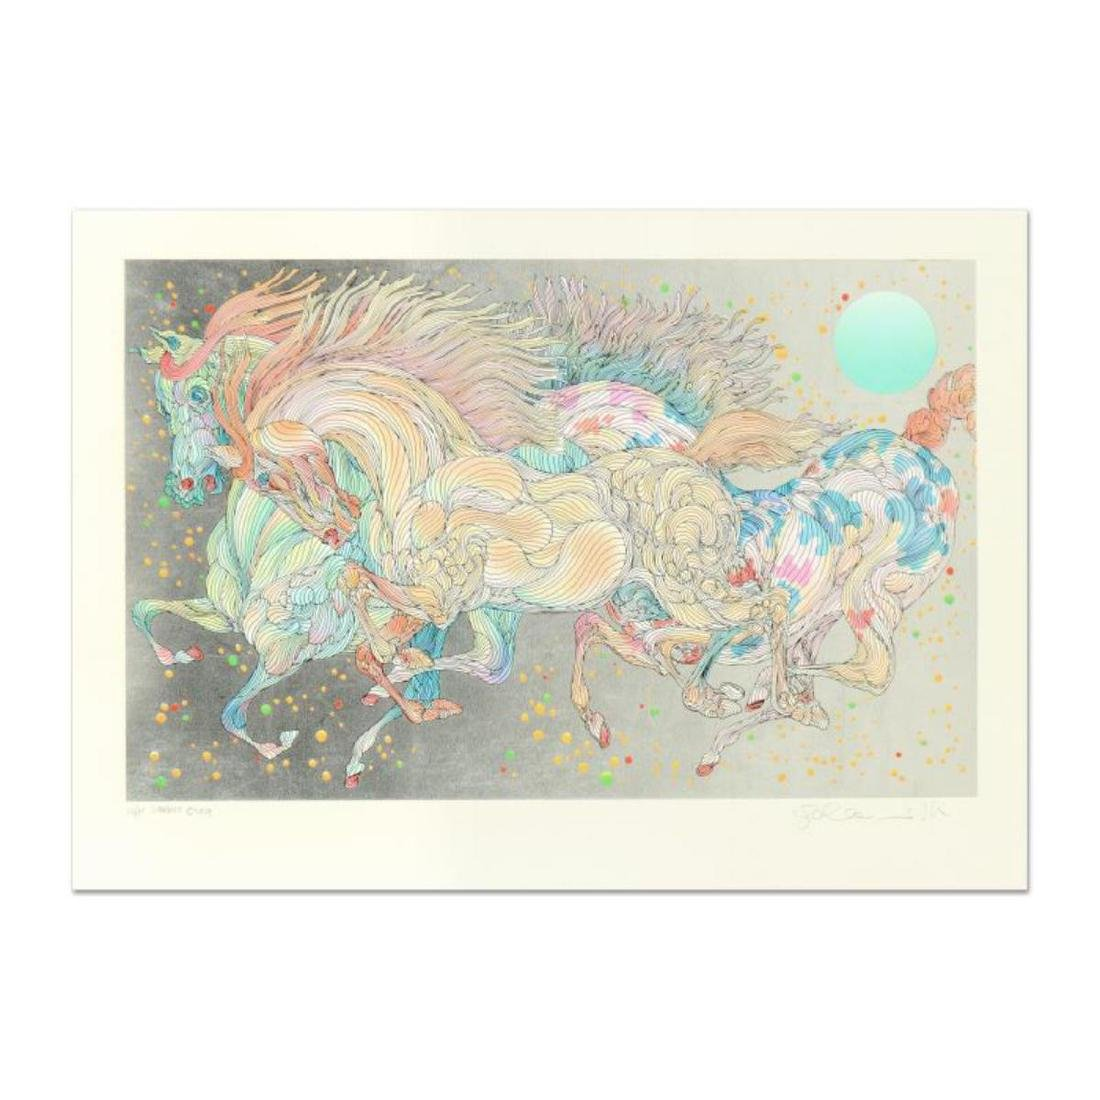 """Guillaume Azoulay - """"Stardust"""" Limited Edition"""